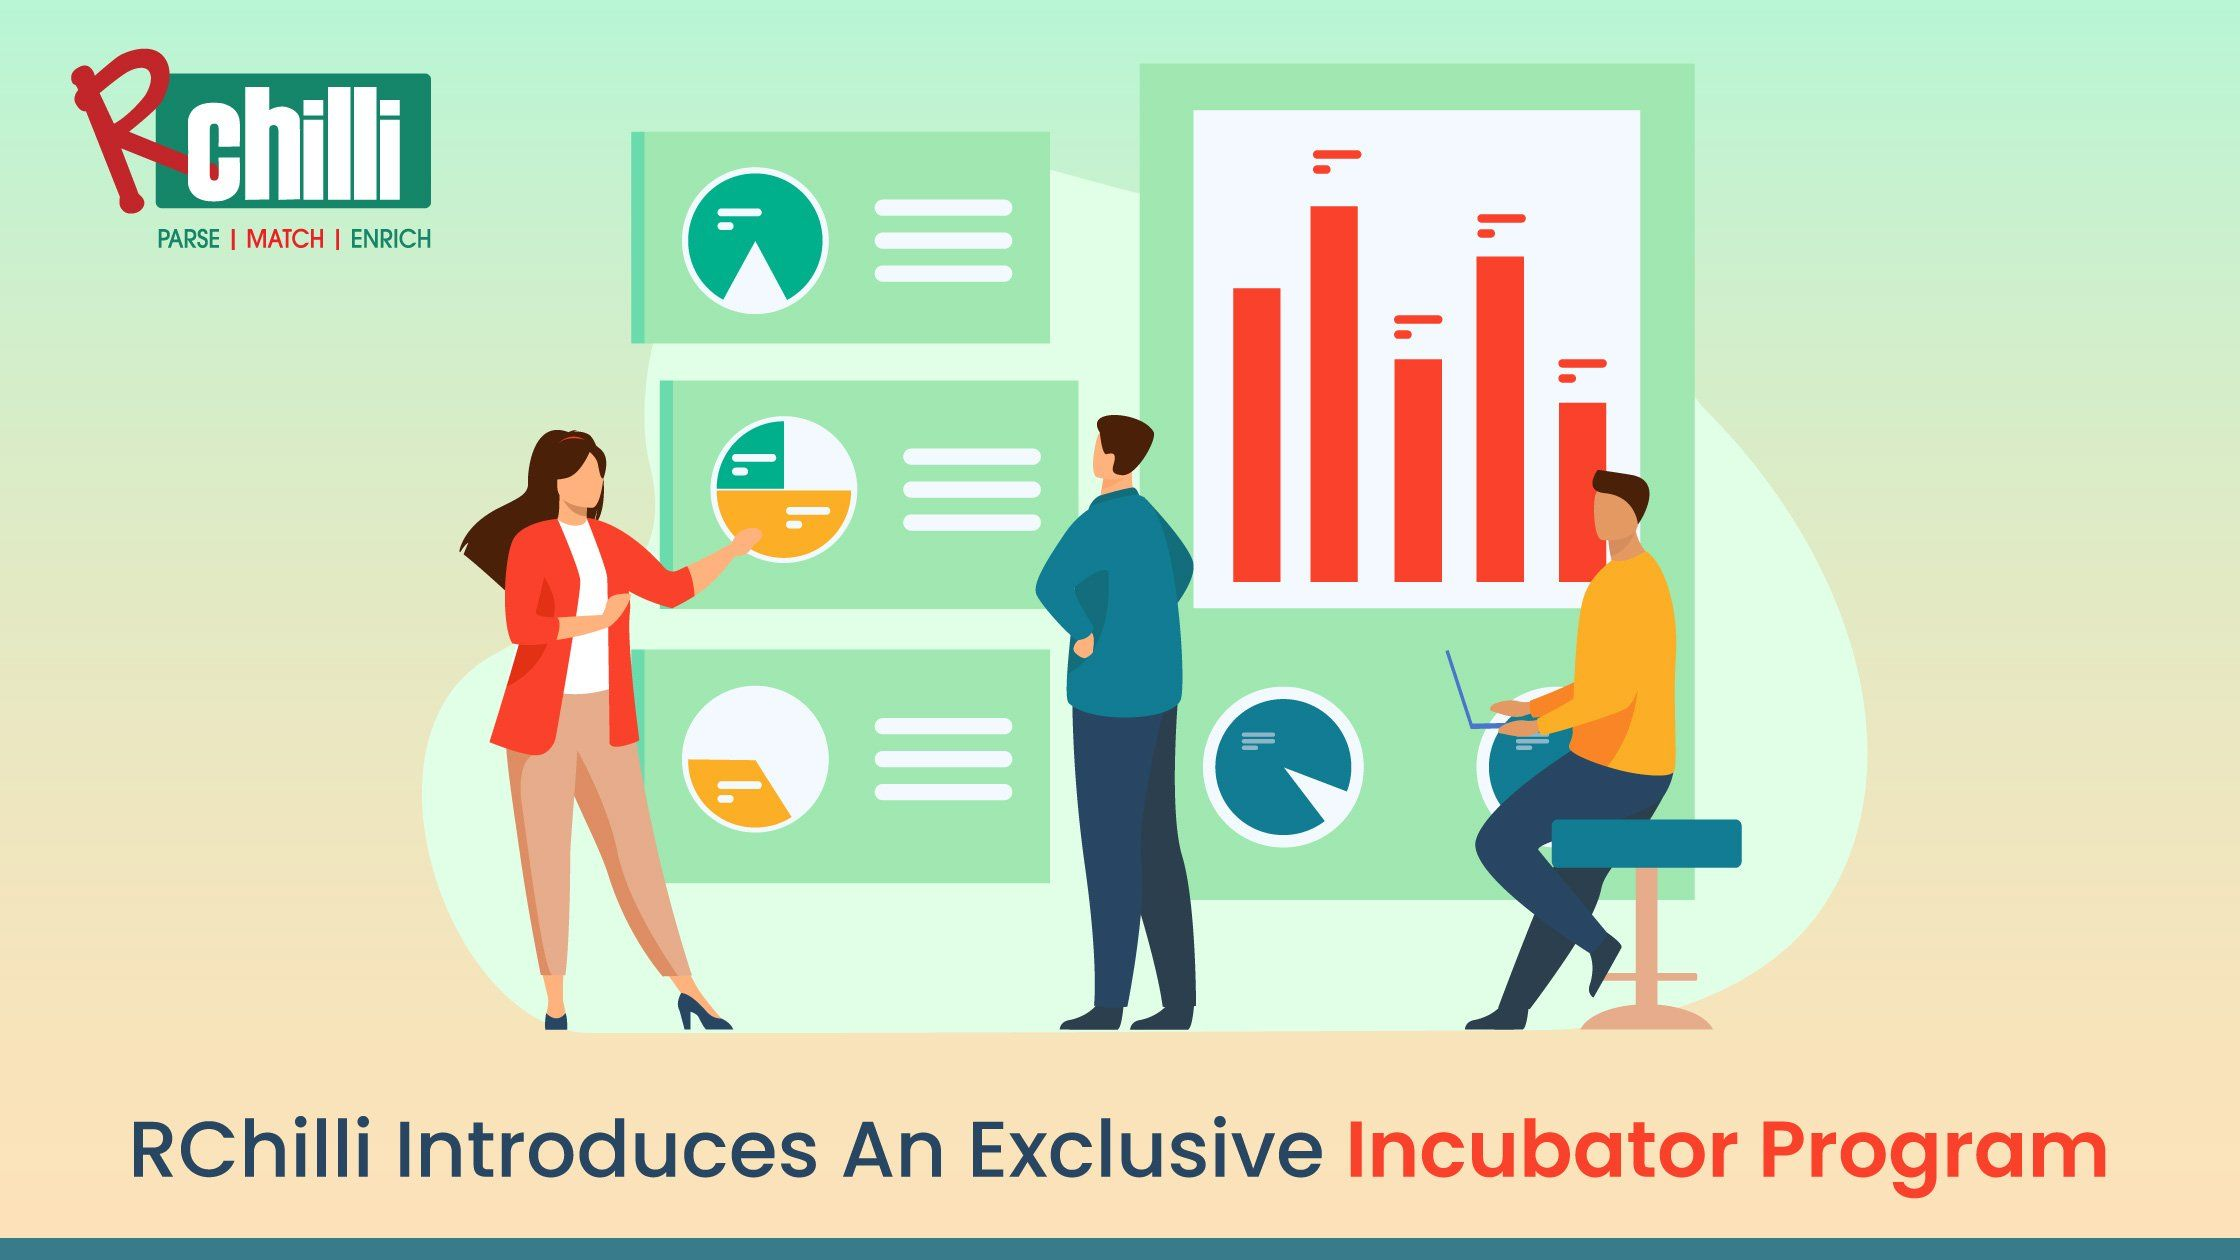 RChilli Introduces An Exclusive Incubator Program